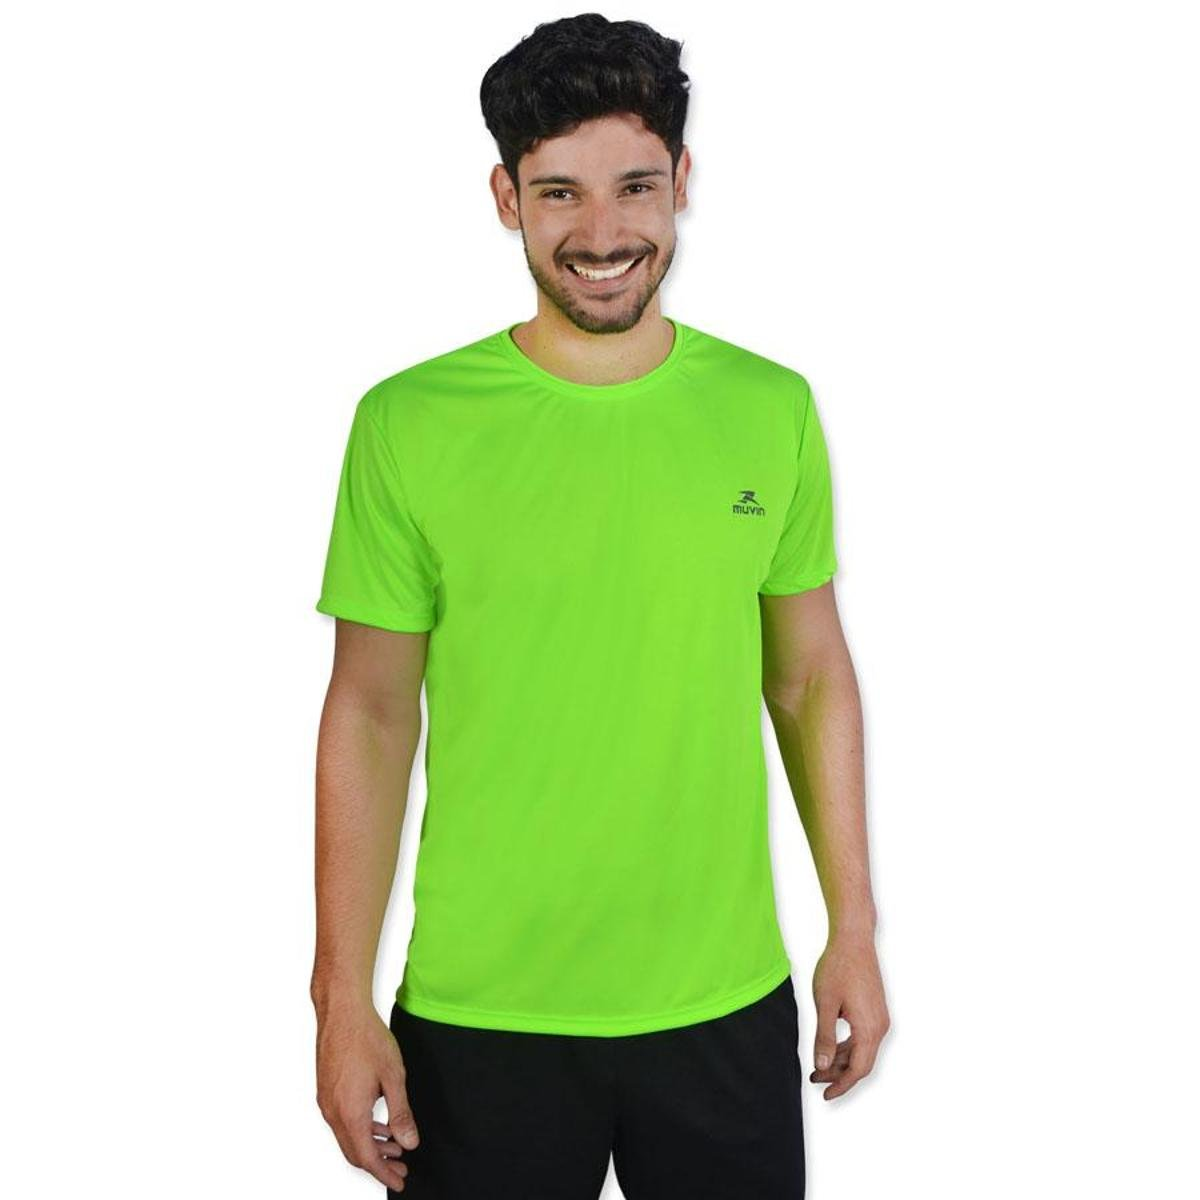 Camiseta Color SS Color Dry Color Muvin Verde Workout Limão SS Muvin Limão Verde Camiseta Workout Dry Camiseta Af10S